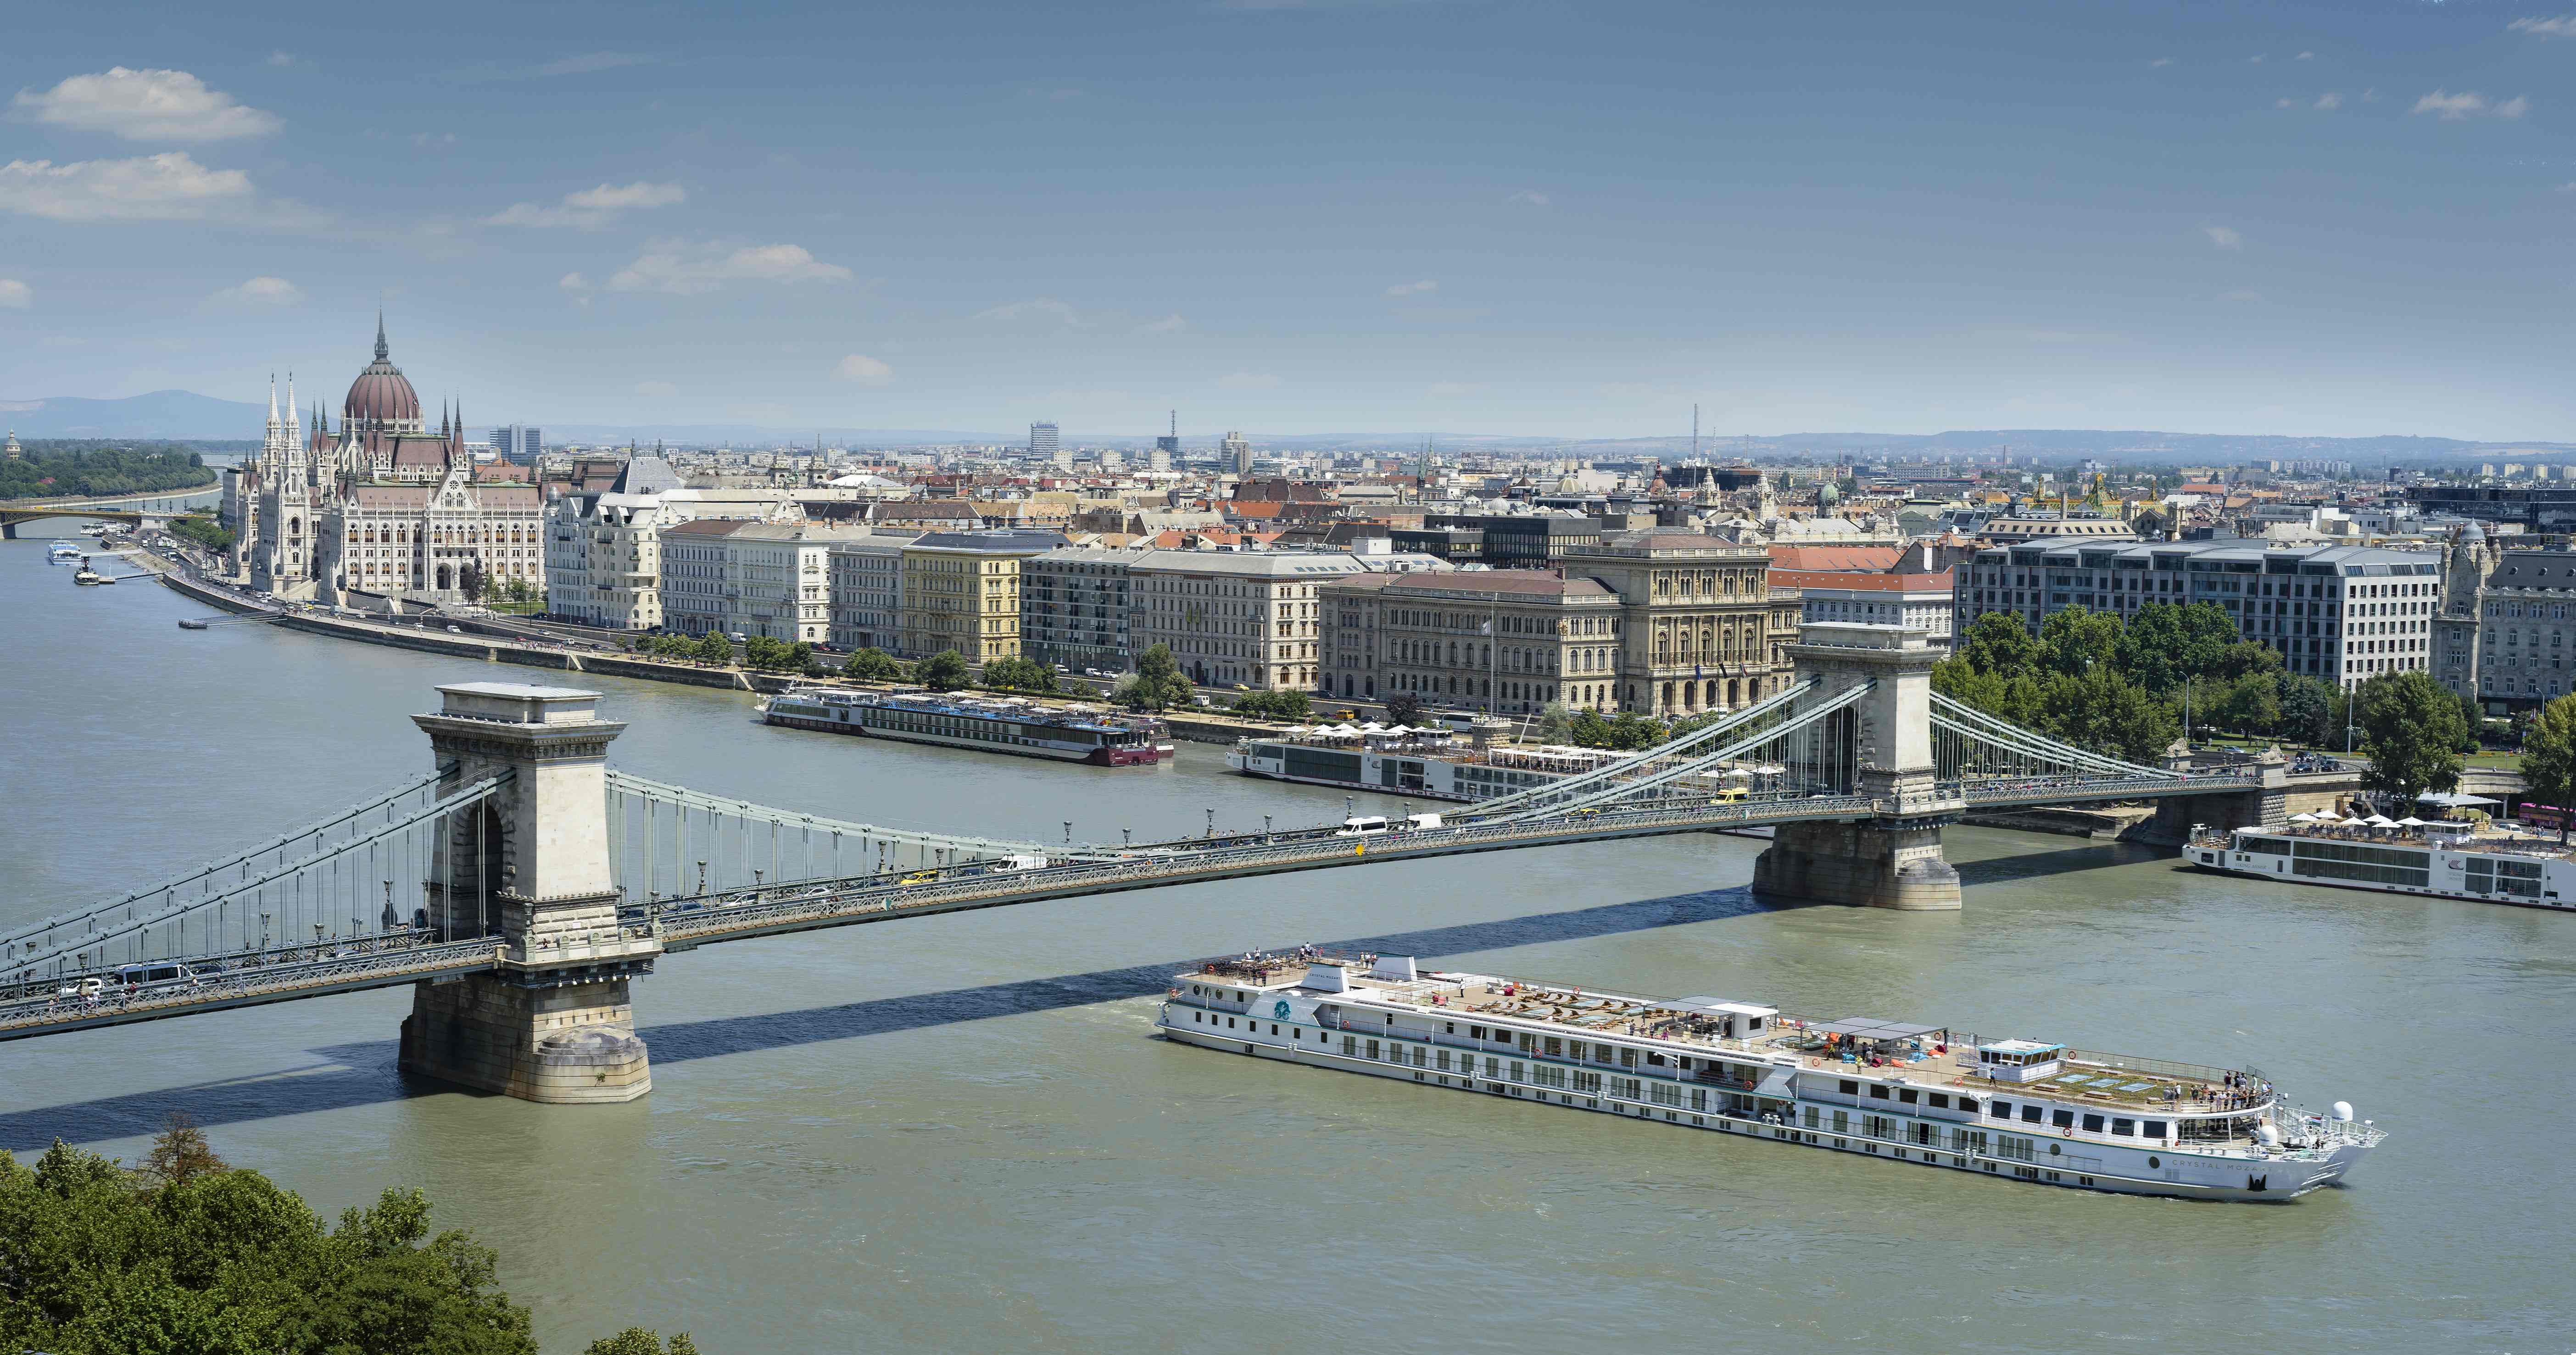 Miramar Express Presents: Crystal Cruises voyages on the River Danube